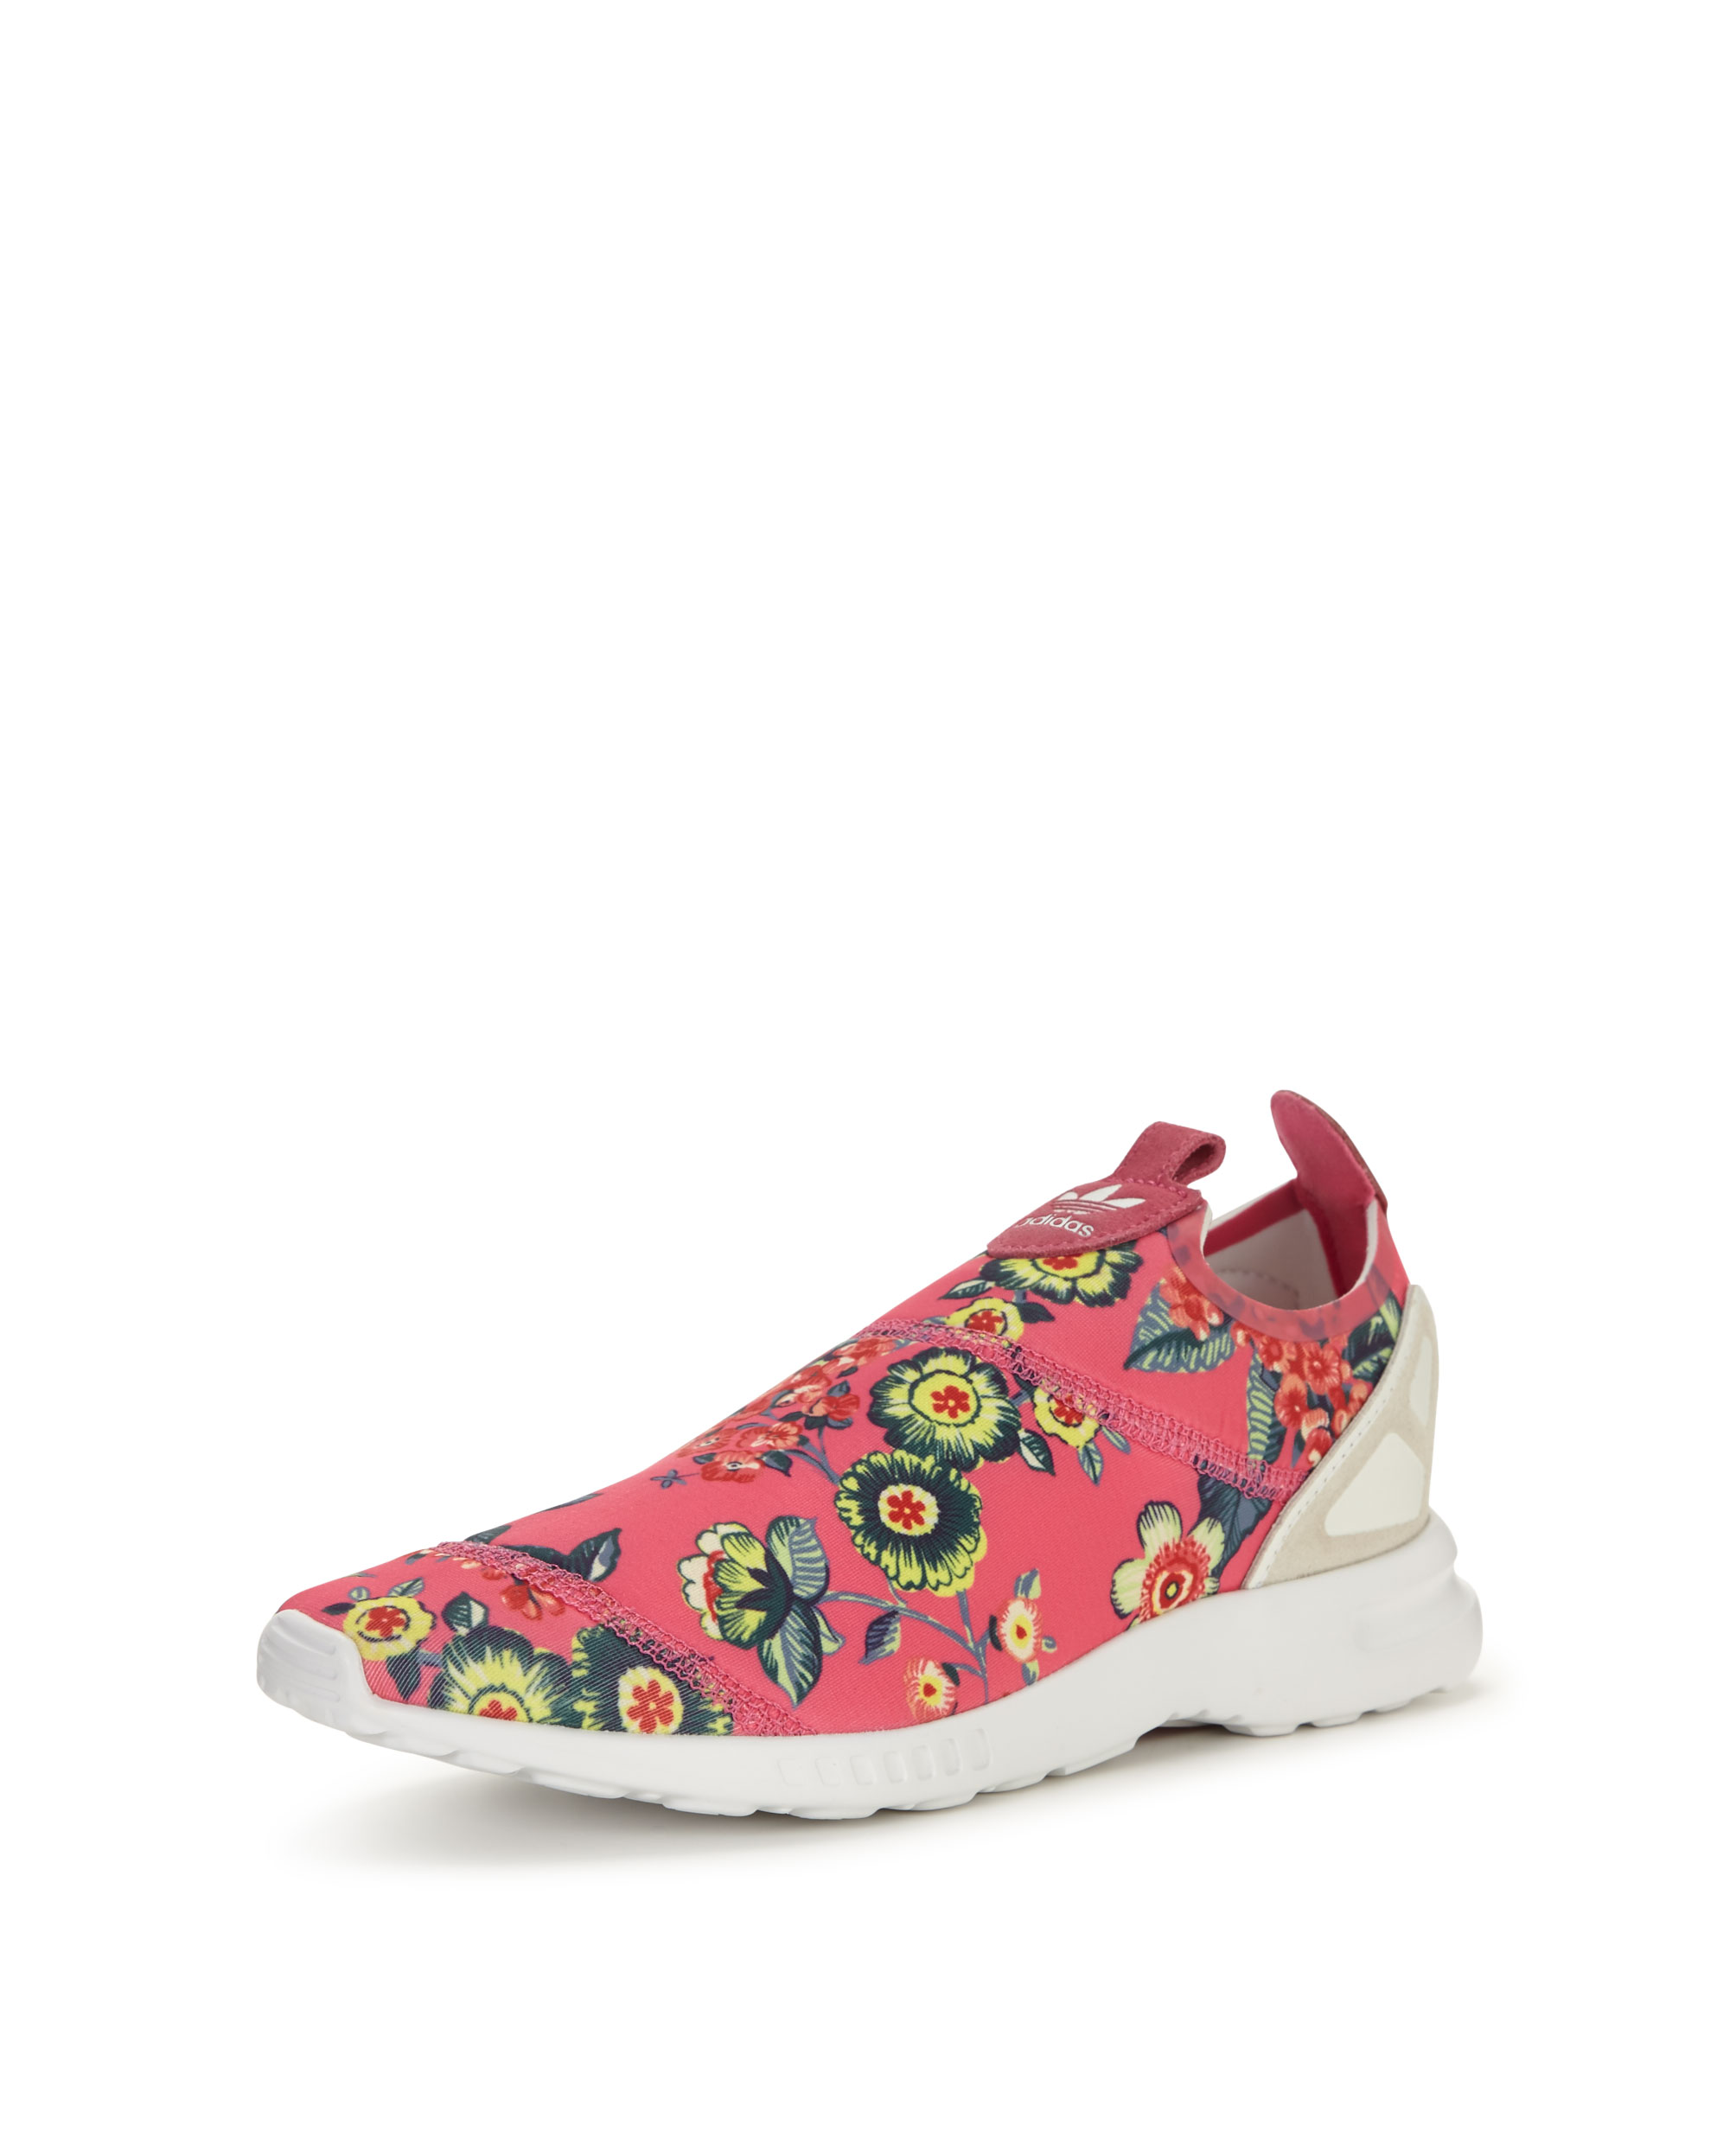 Adidas Originals Zx Flux Smooth Slip On Trainers